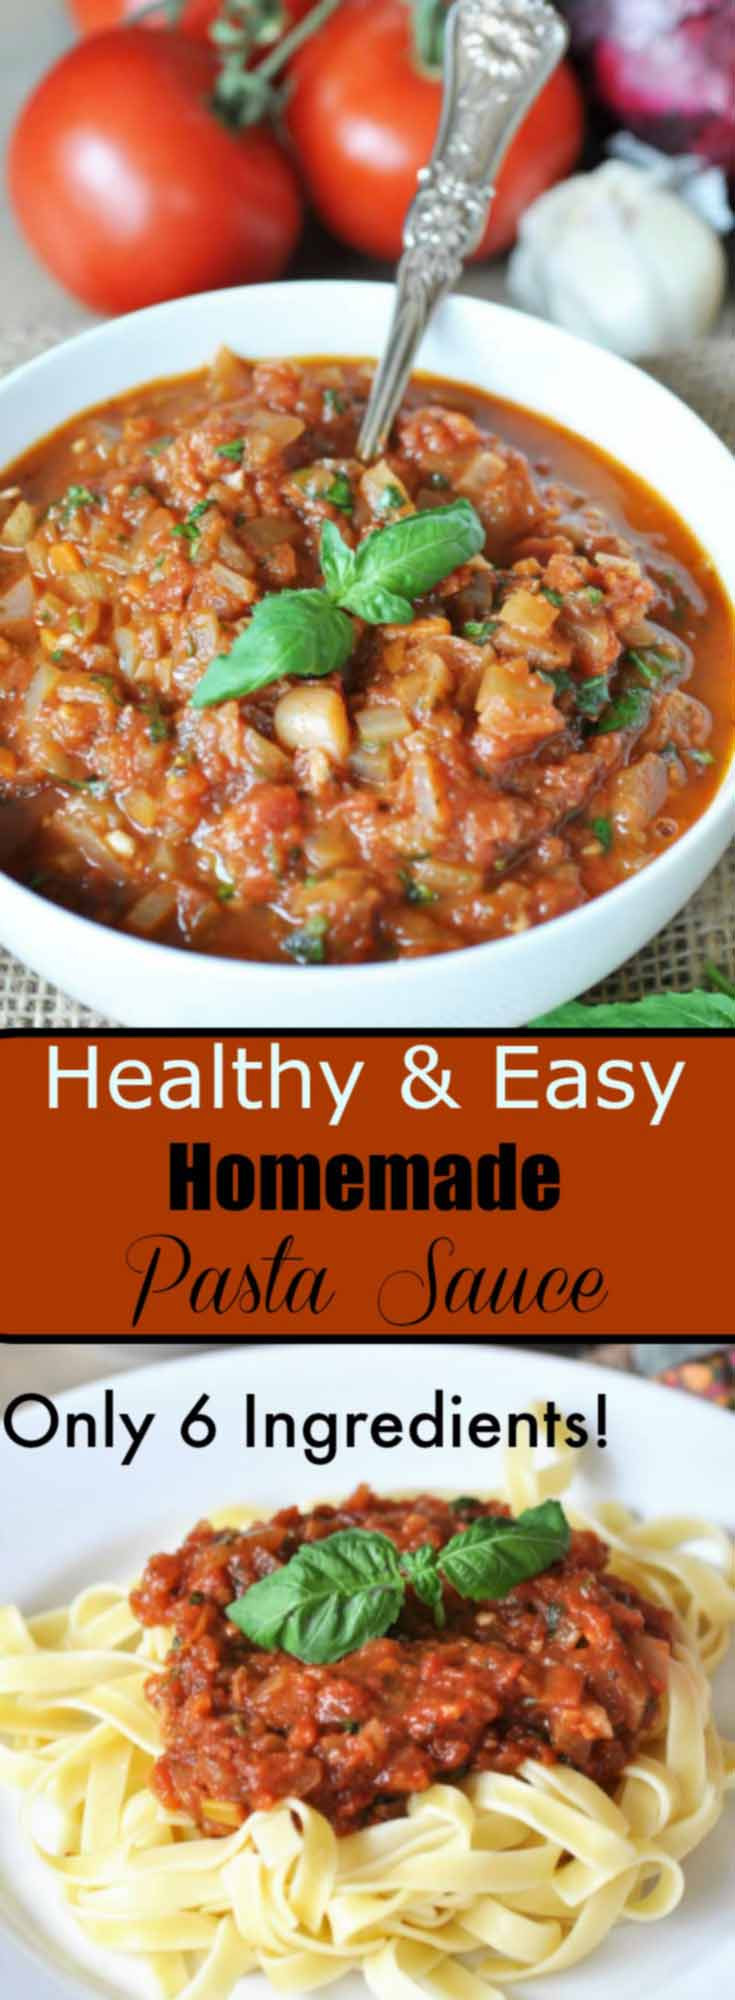 Healthy Homemade Pasta Sauce  Healthy and Easy Homemade Pasta Sauce Veganosity